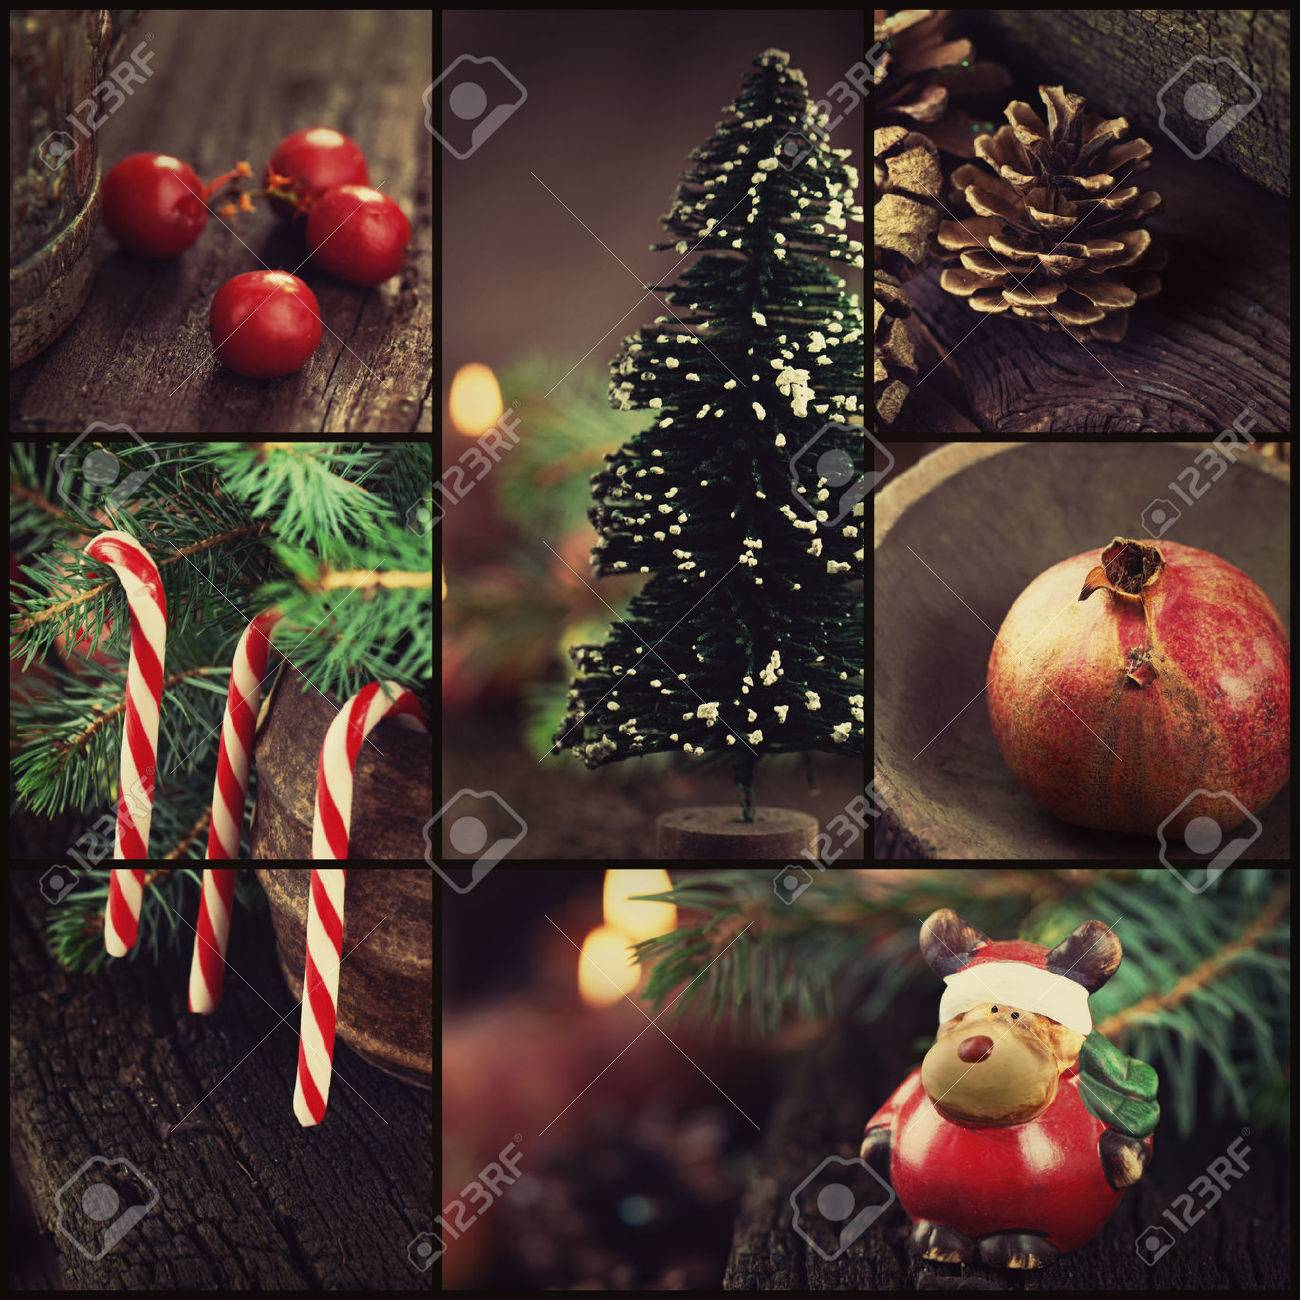 Christmas Series Collage Of Rustic Xmas Ornaments And Decoration